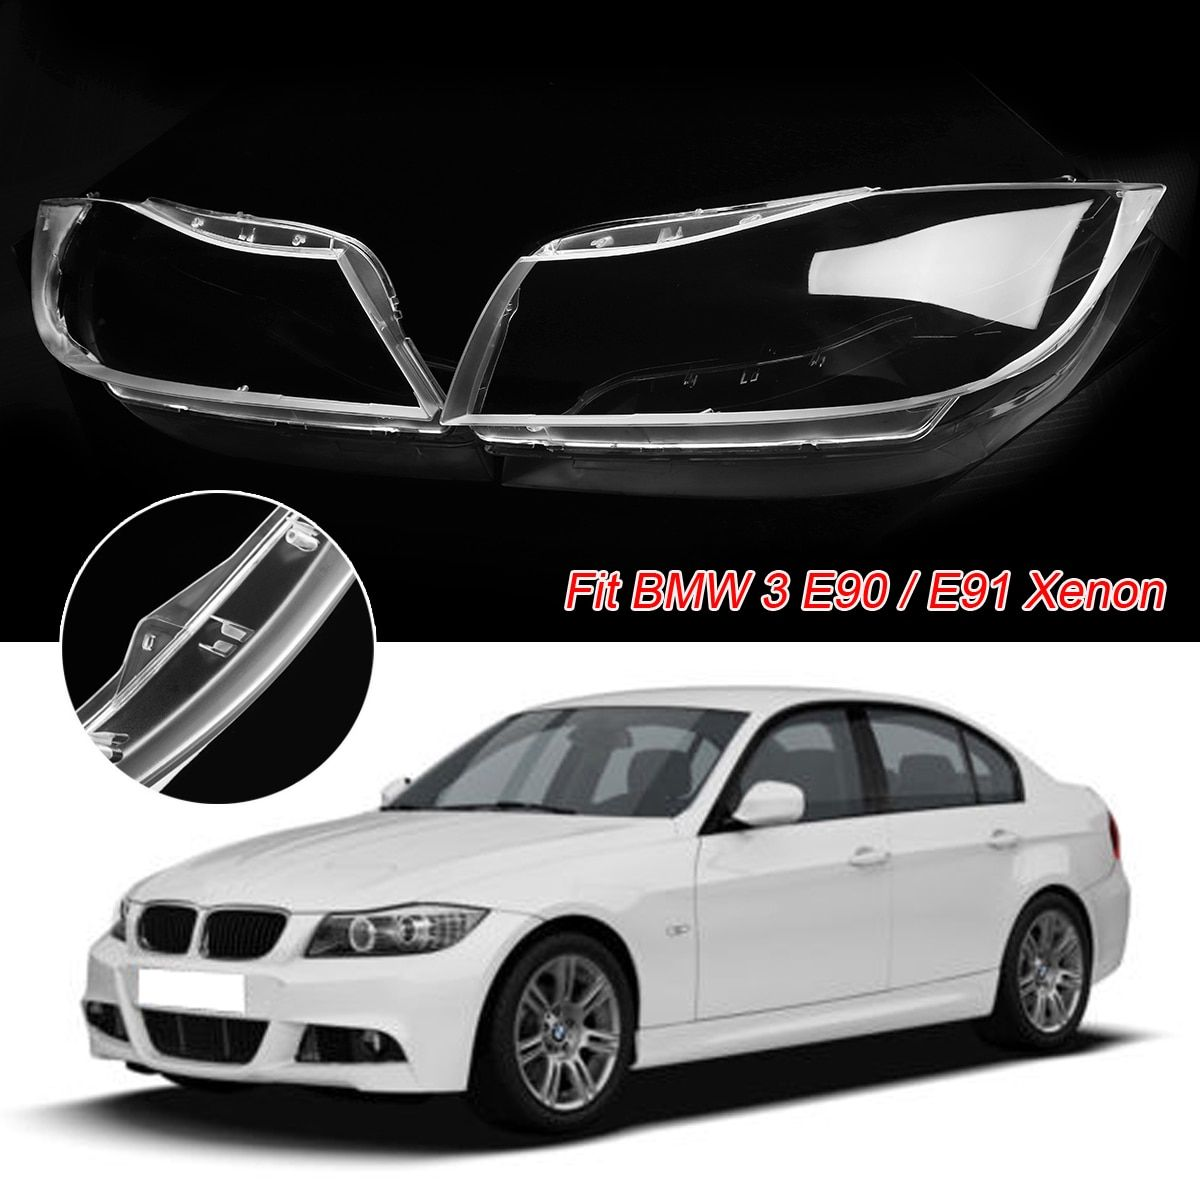 2pcs Headlight Lens Plastic Cover For BMW 3 E90 Sedan/E91 Touring Only For XENON Clear Headlight Headlamp Lens Covers In Shell